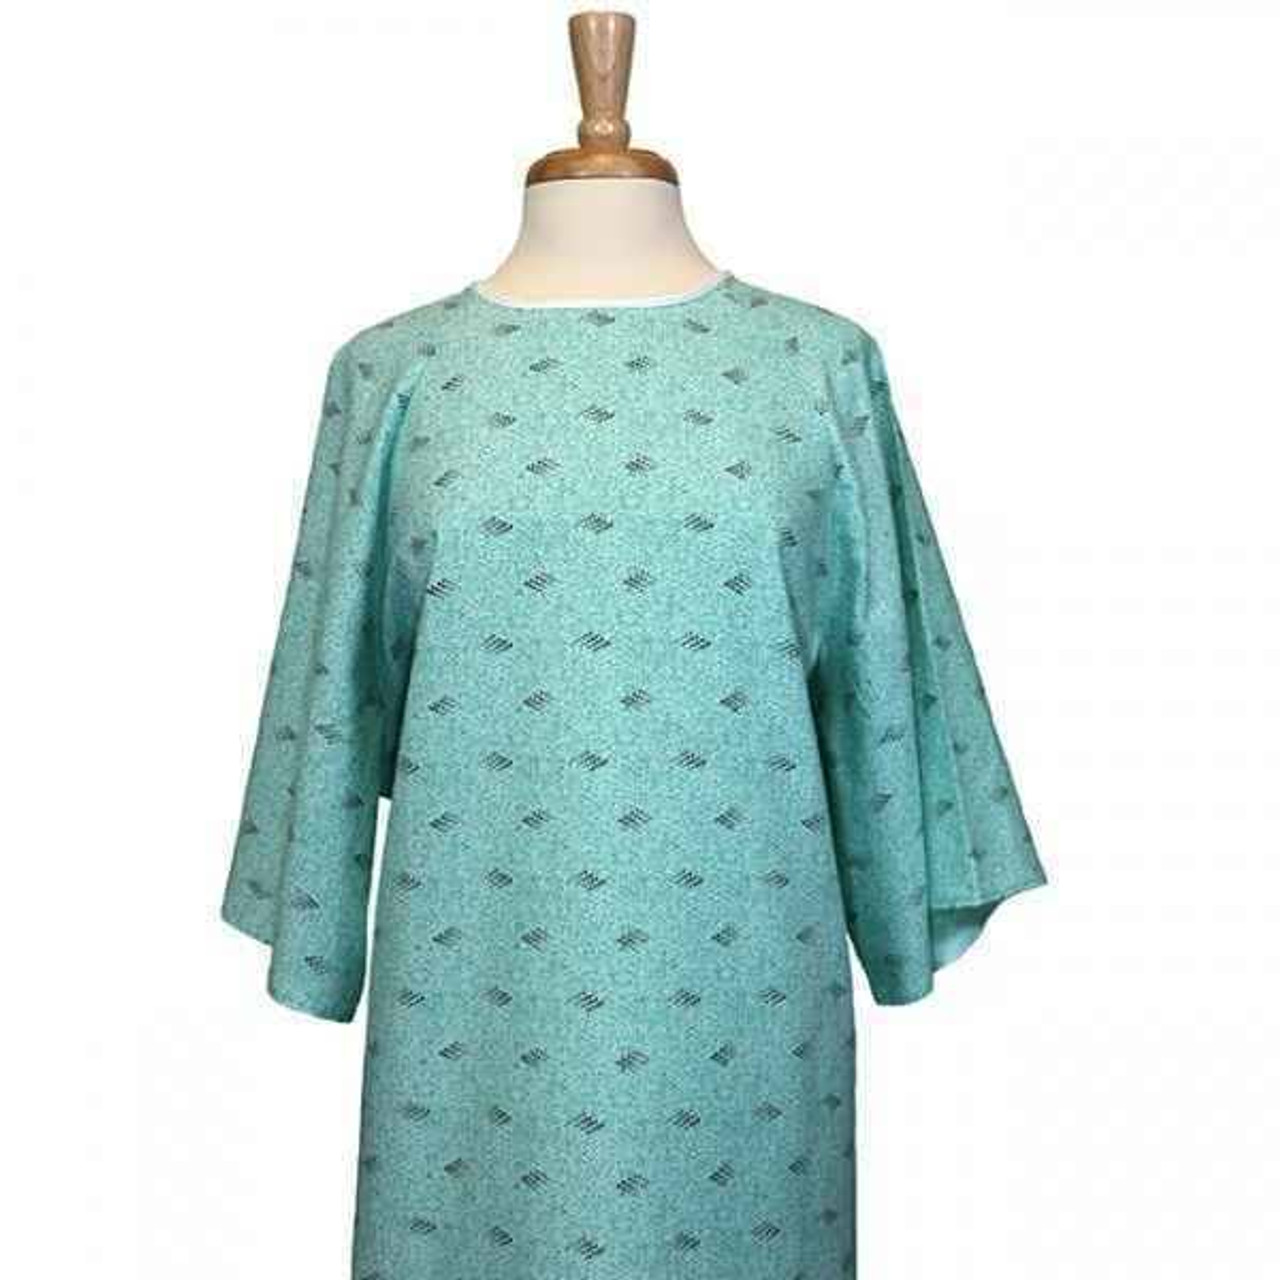 Patient Gown or Ambassador Overlap or Green/Grey stripe or 63 sweep or 1 DZ